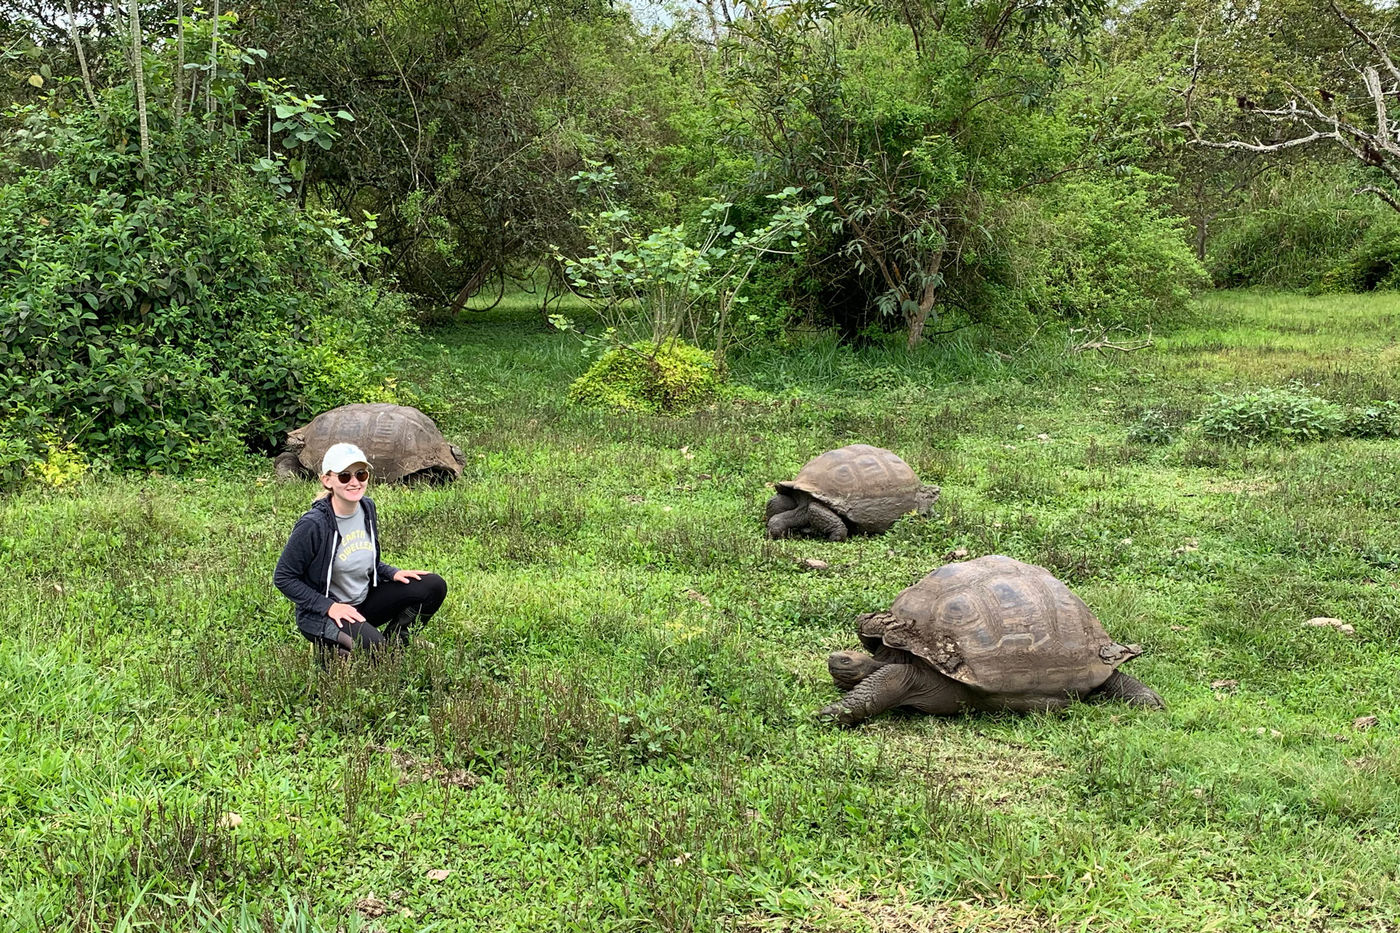 Molly Butler crouches in the grass near three Galapagos giant tortoises.